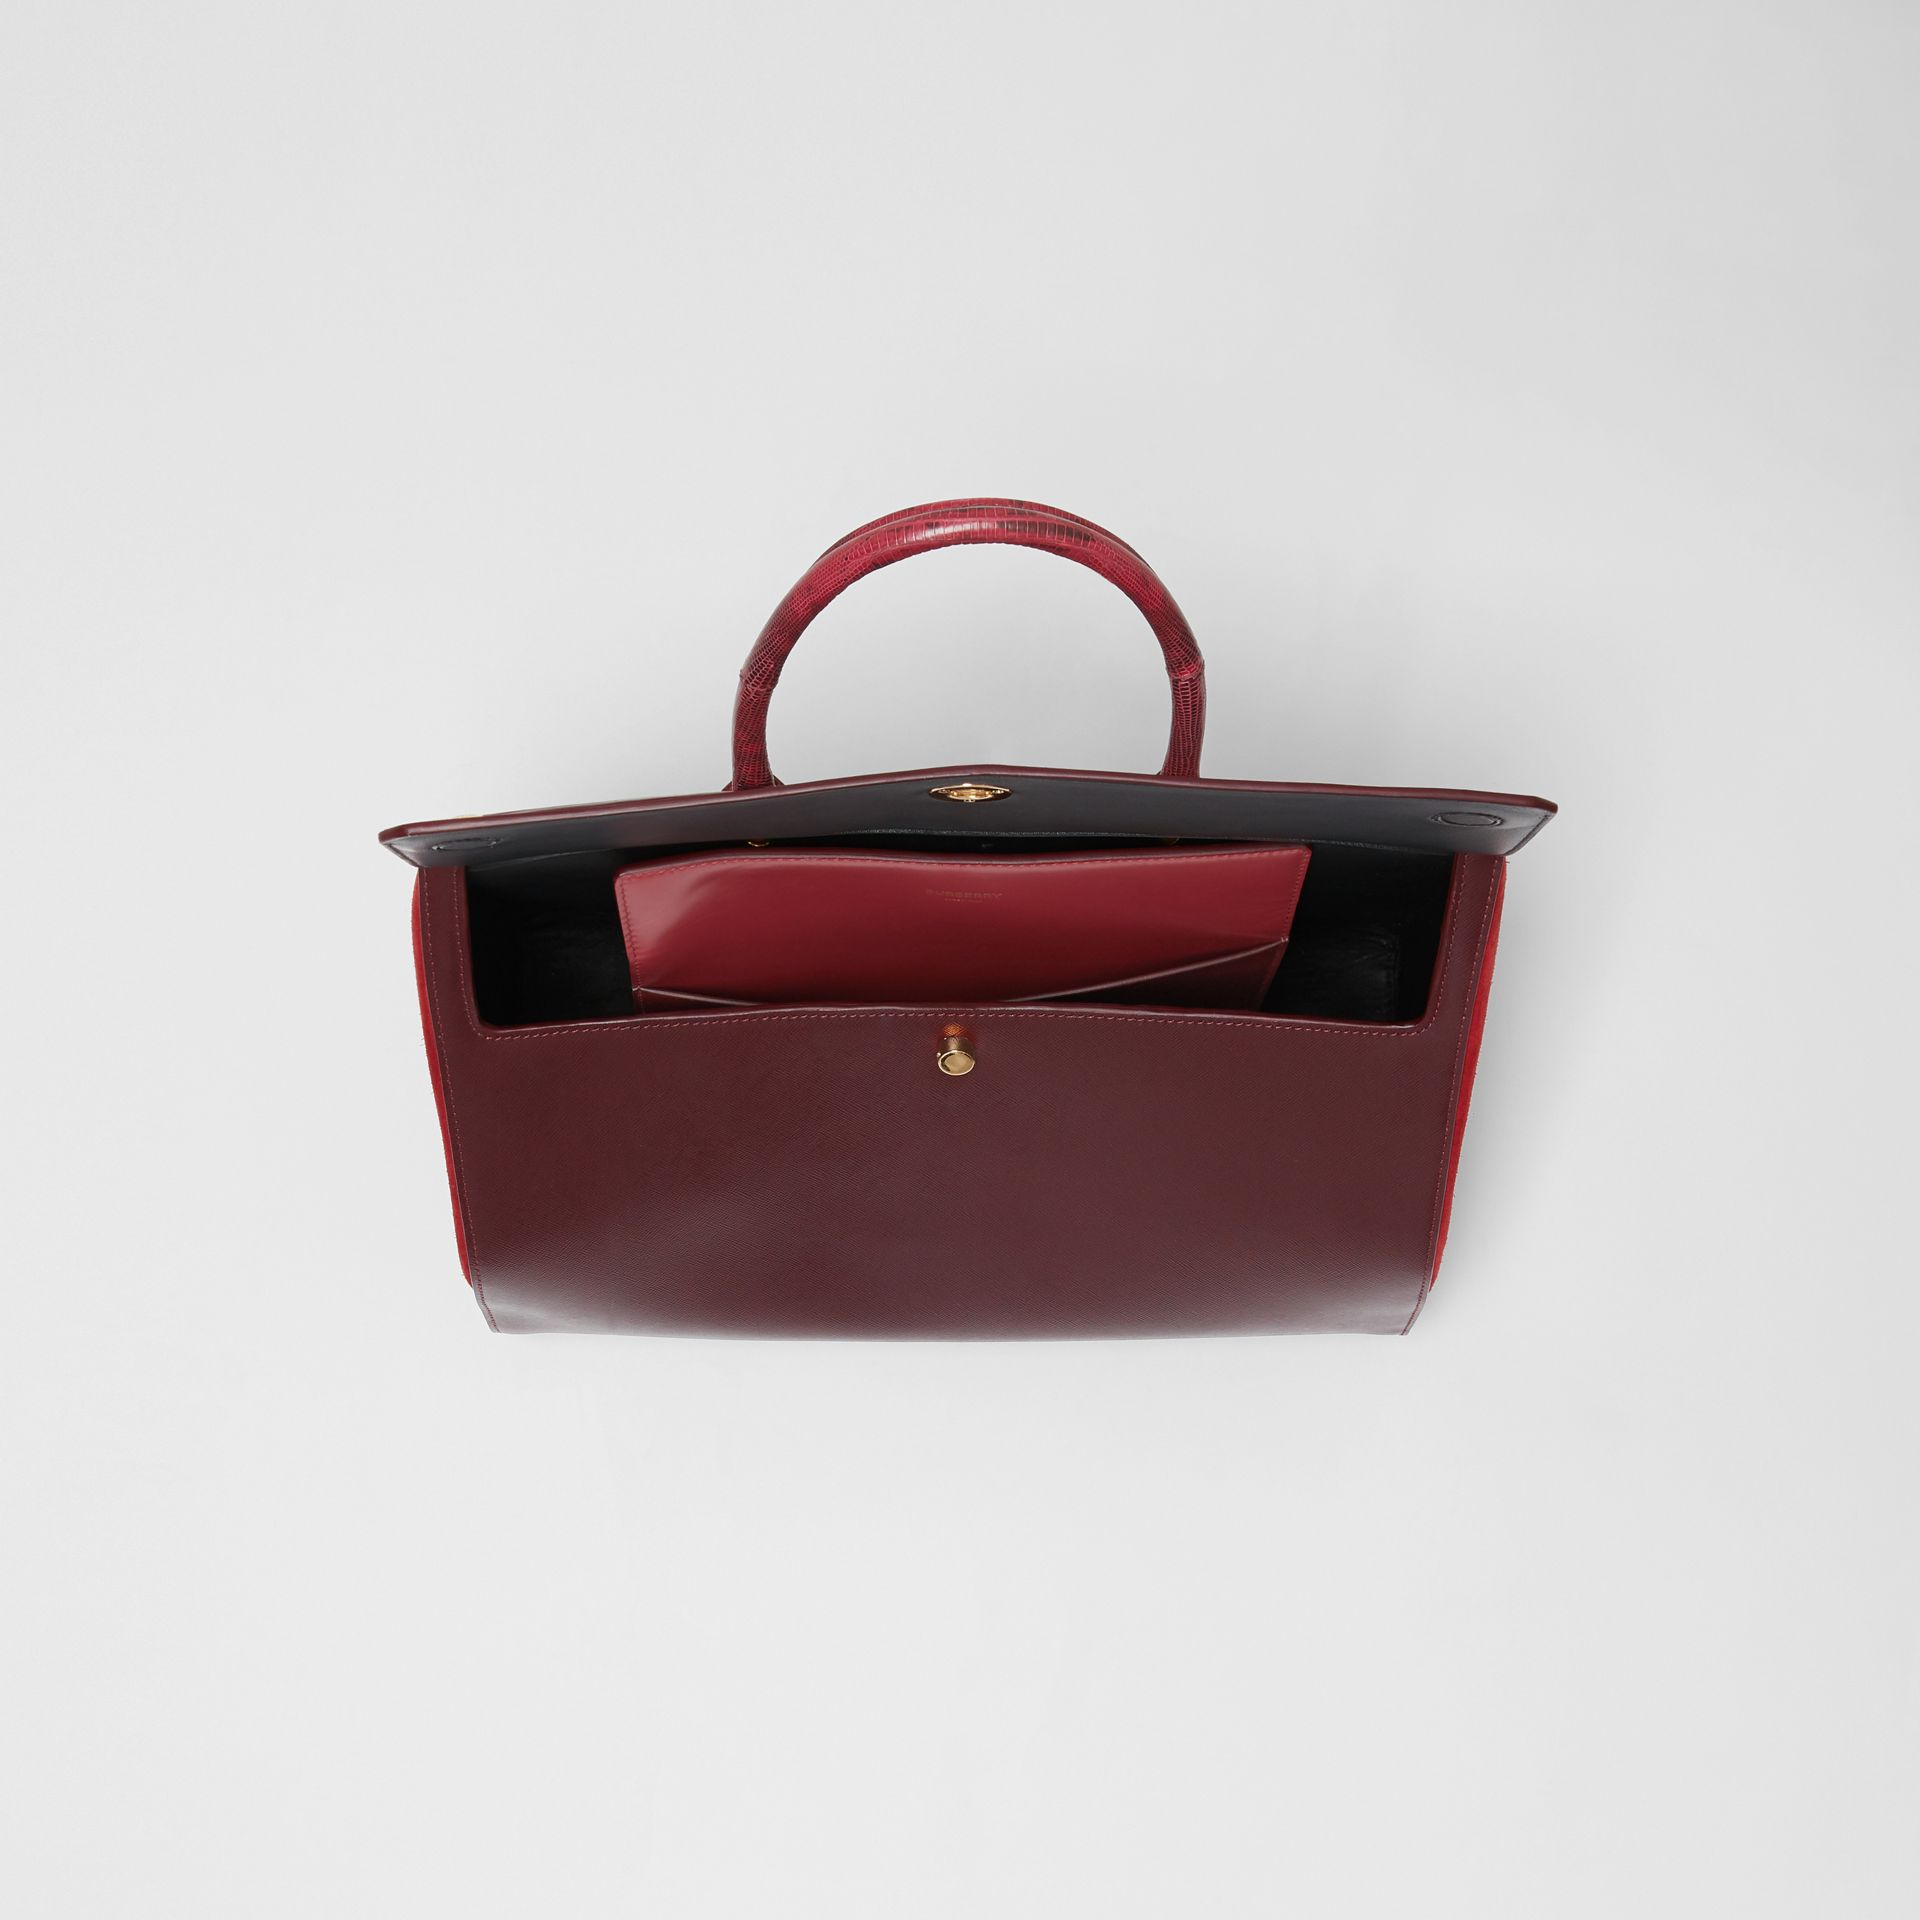 Medium Leather and Suede Elizabeth Bag in Crimson - Women | Burberry - gallery image 4